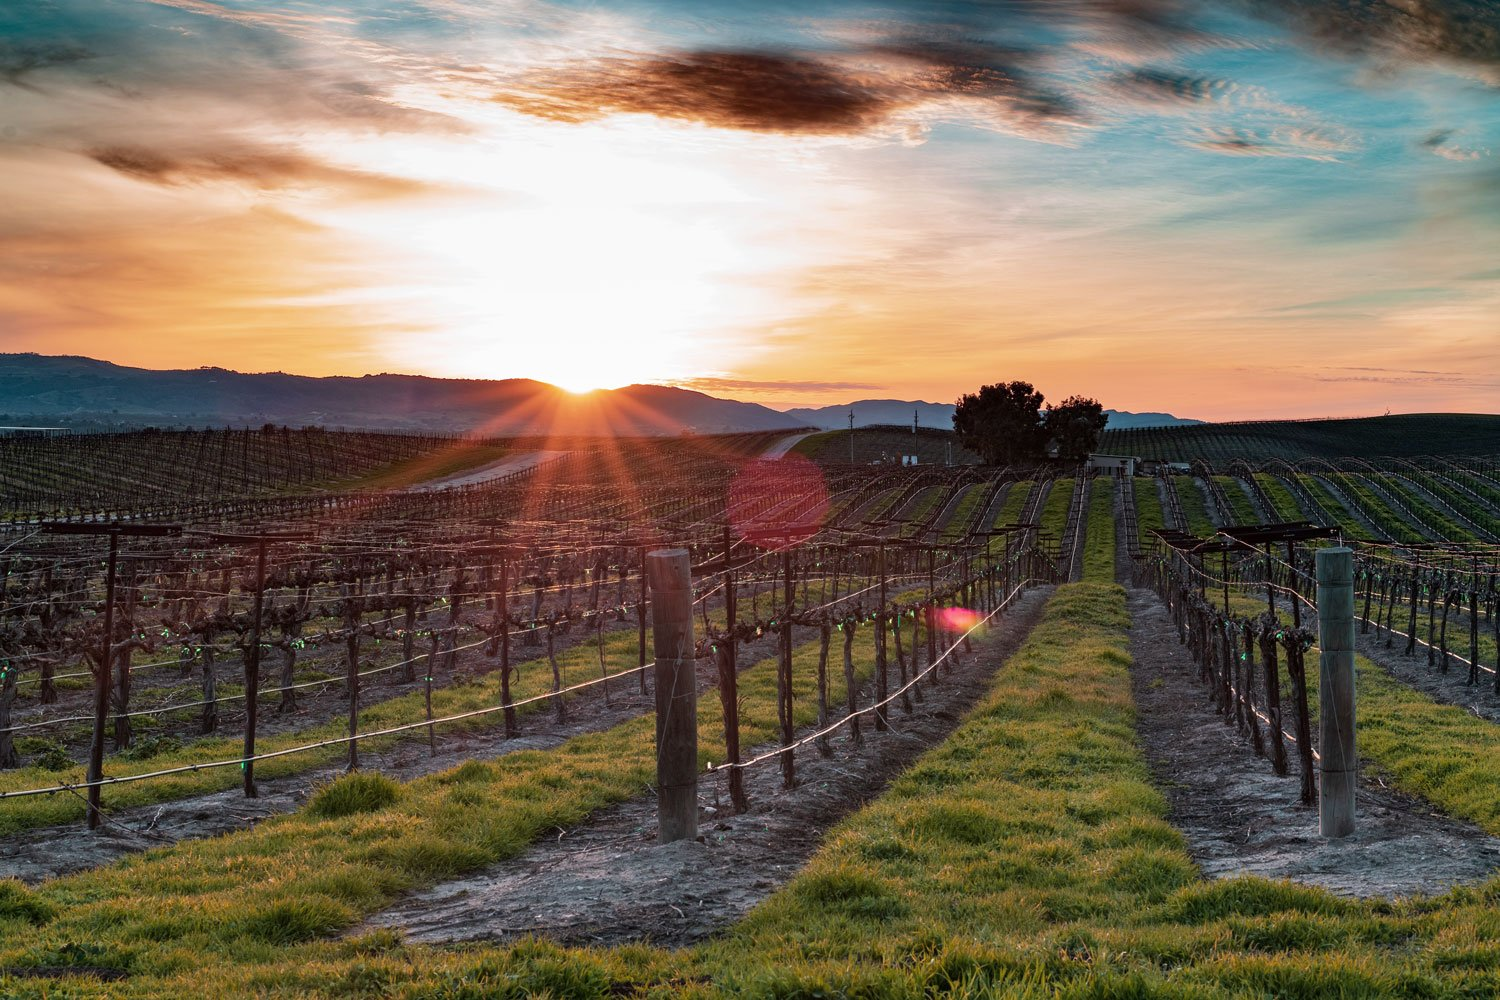 Sunset over vineyards, Paso Robles